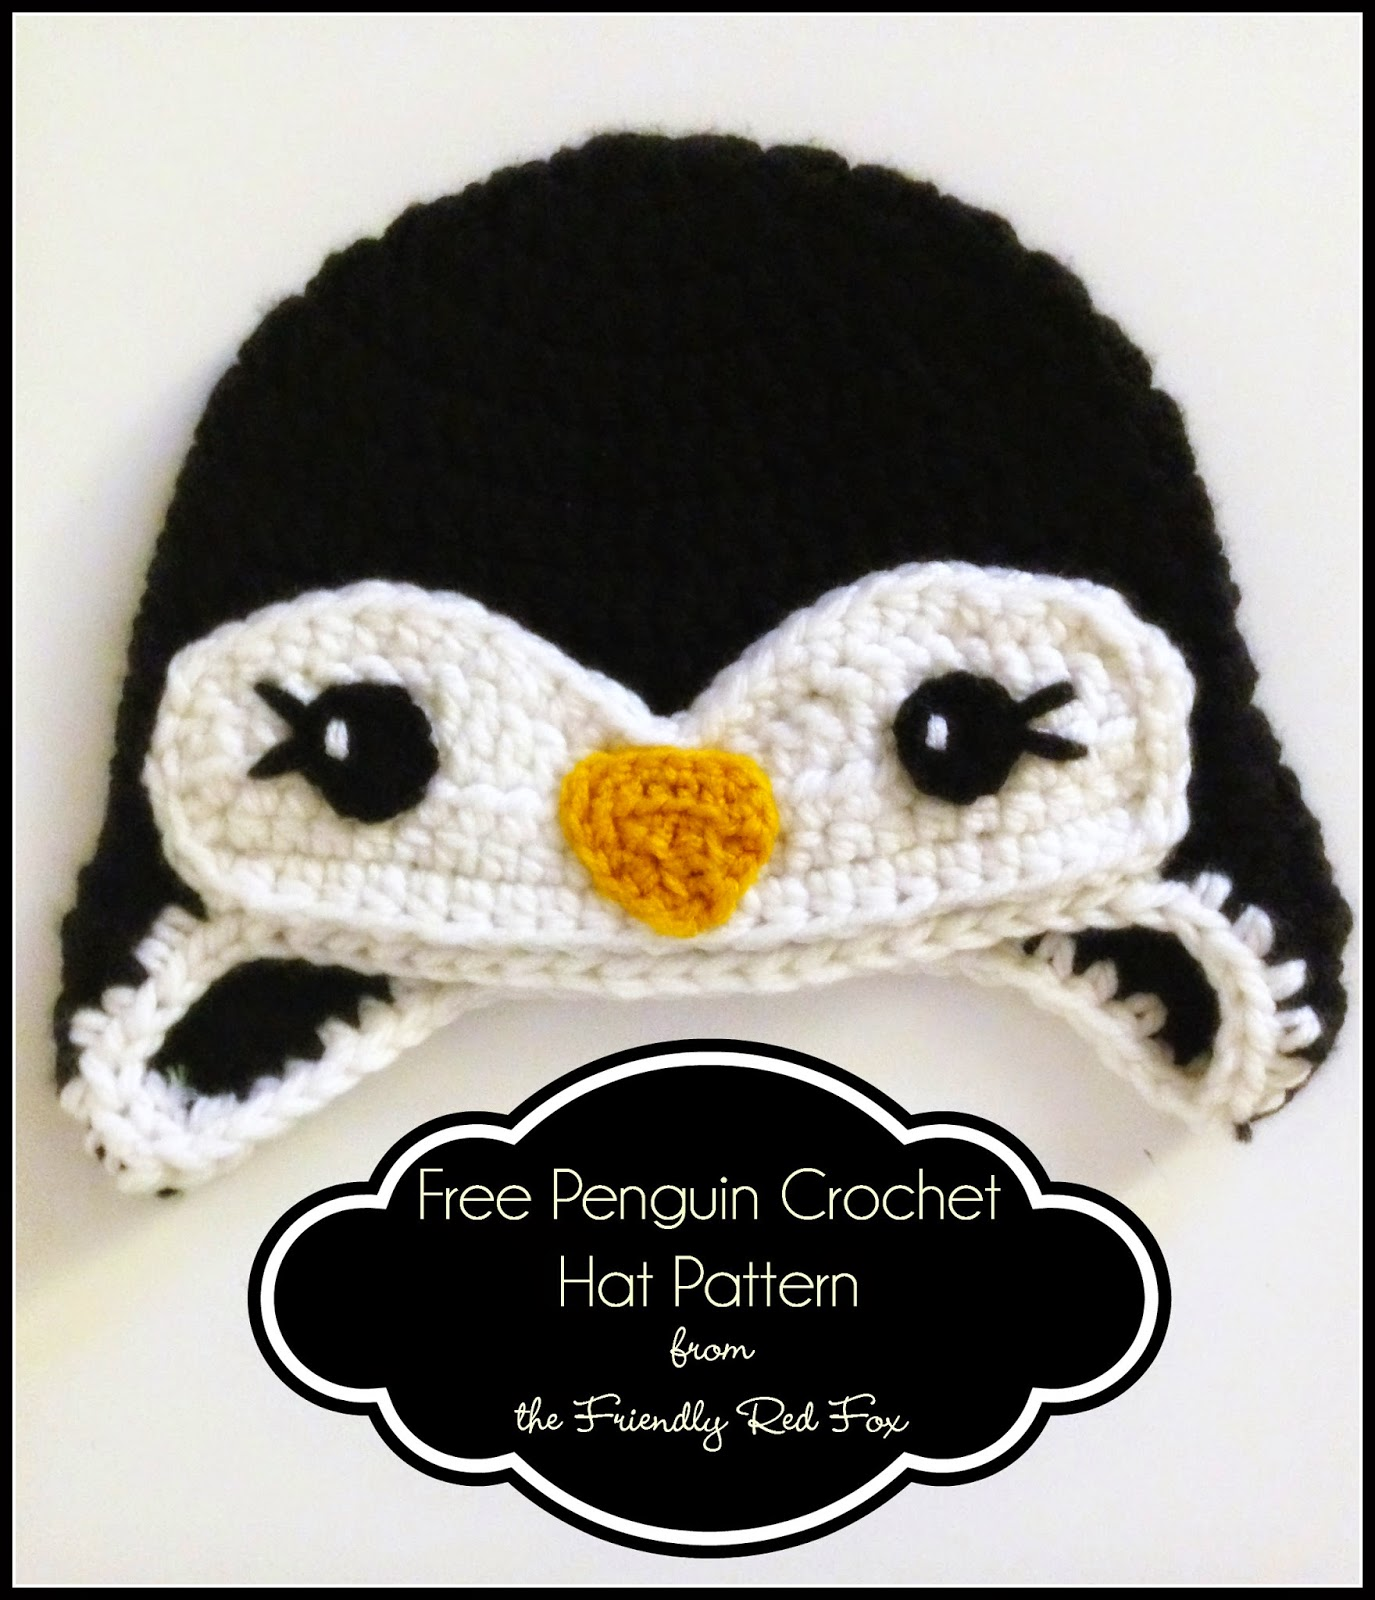 Crochet Pattern Free Penguin : Free Penguin Crochet Hat Pattern - The Friendly Red Fox